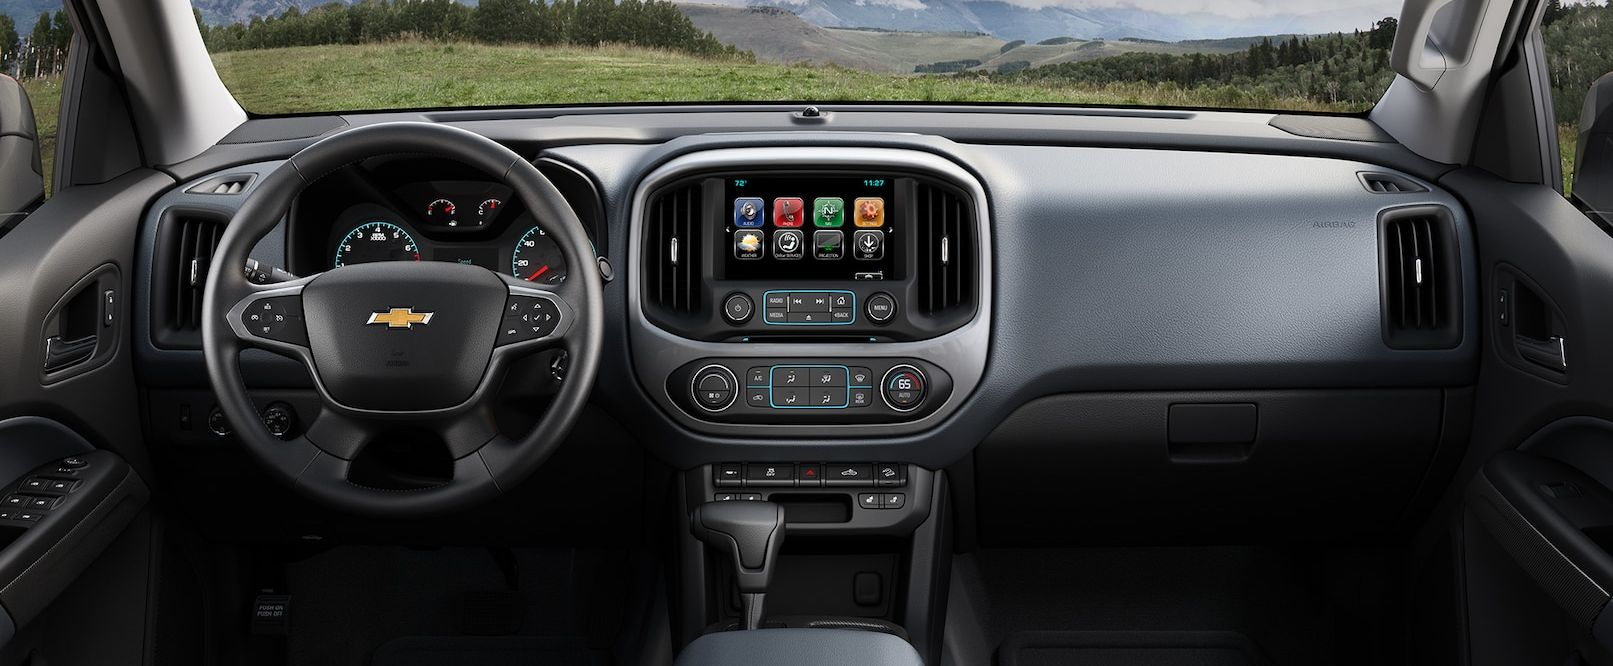 Tech-Loaded Interior of the 2018 Chevy Colorado